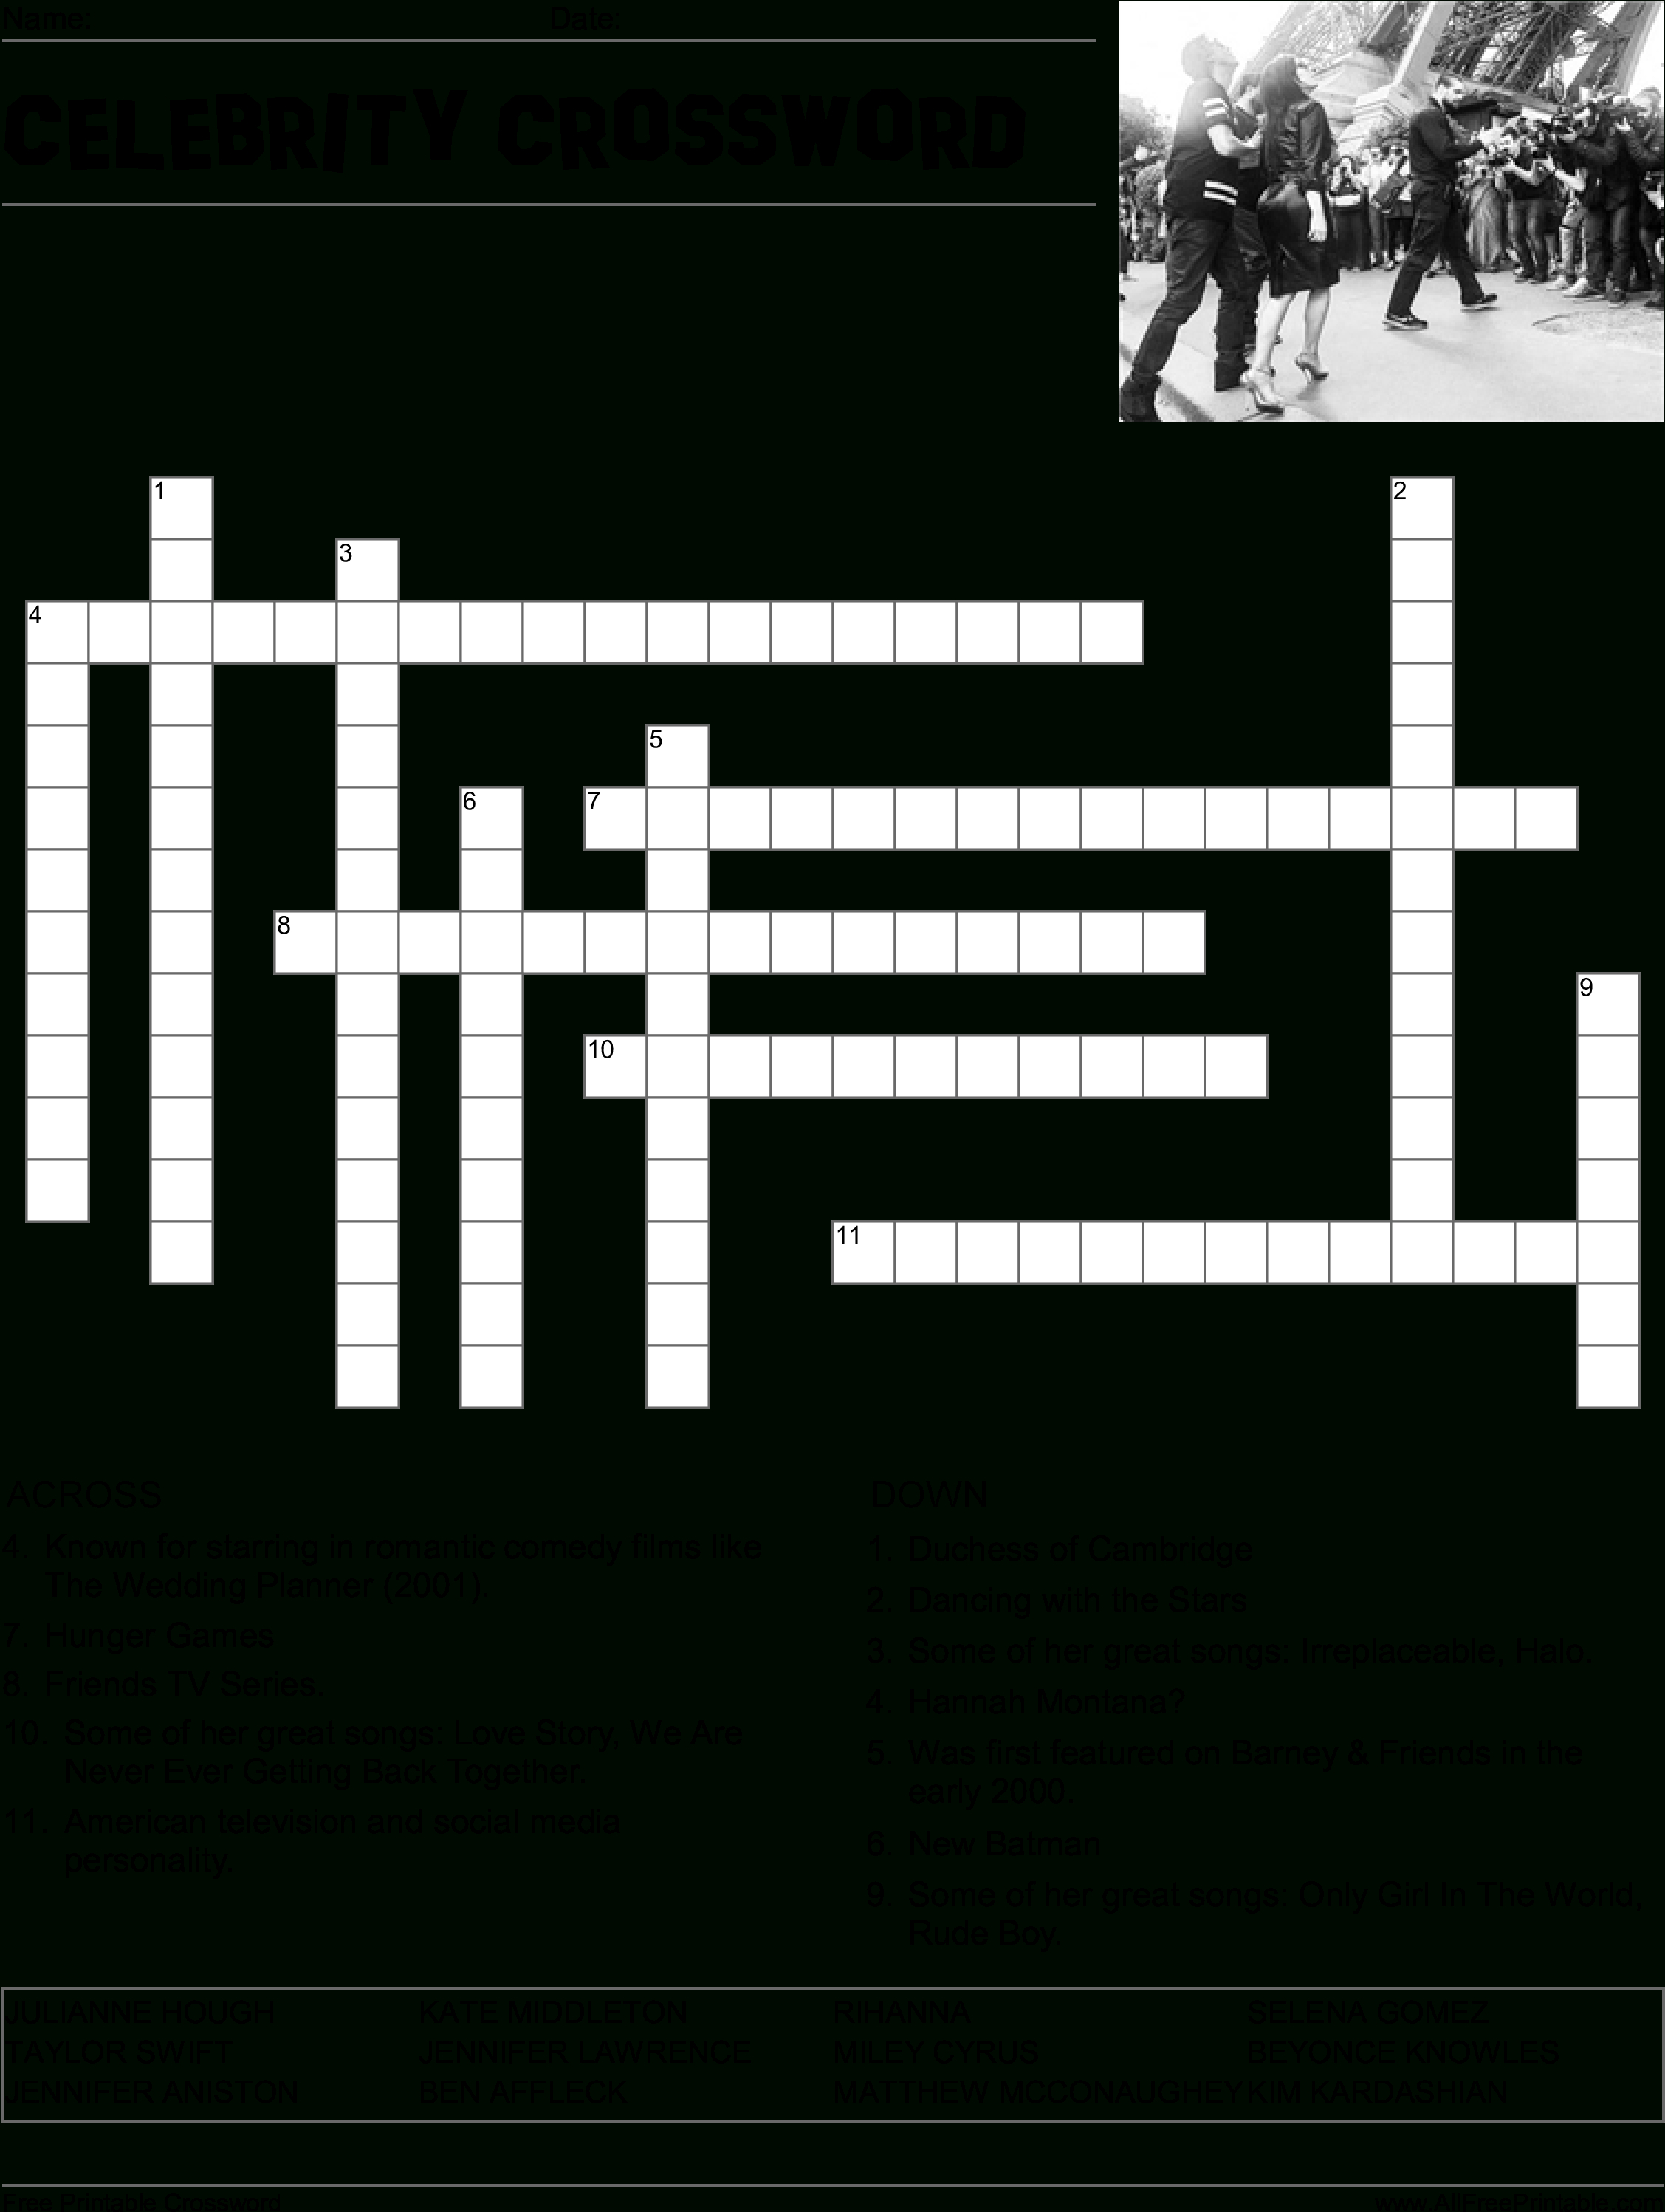 Hd Celebrity Crossword Puzzle Main Image Download Template - Word - Printable Military Crossword Puzzles